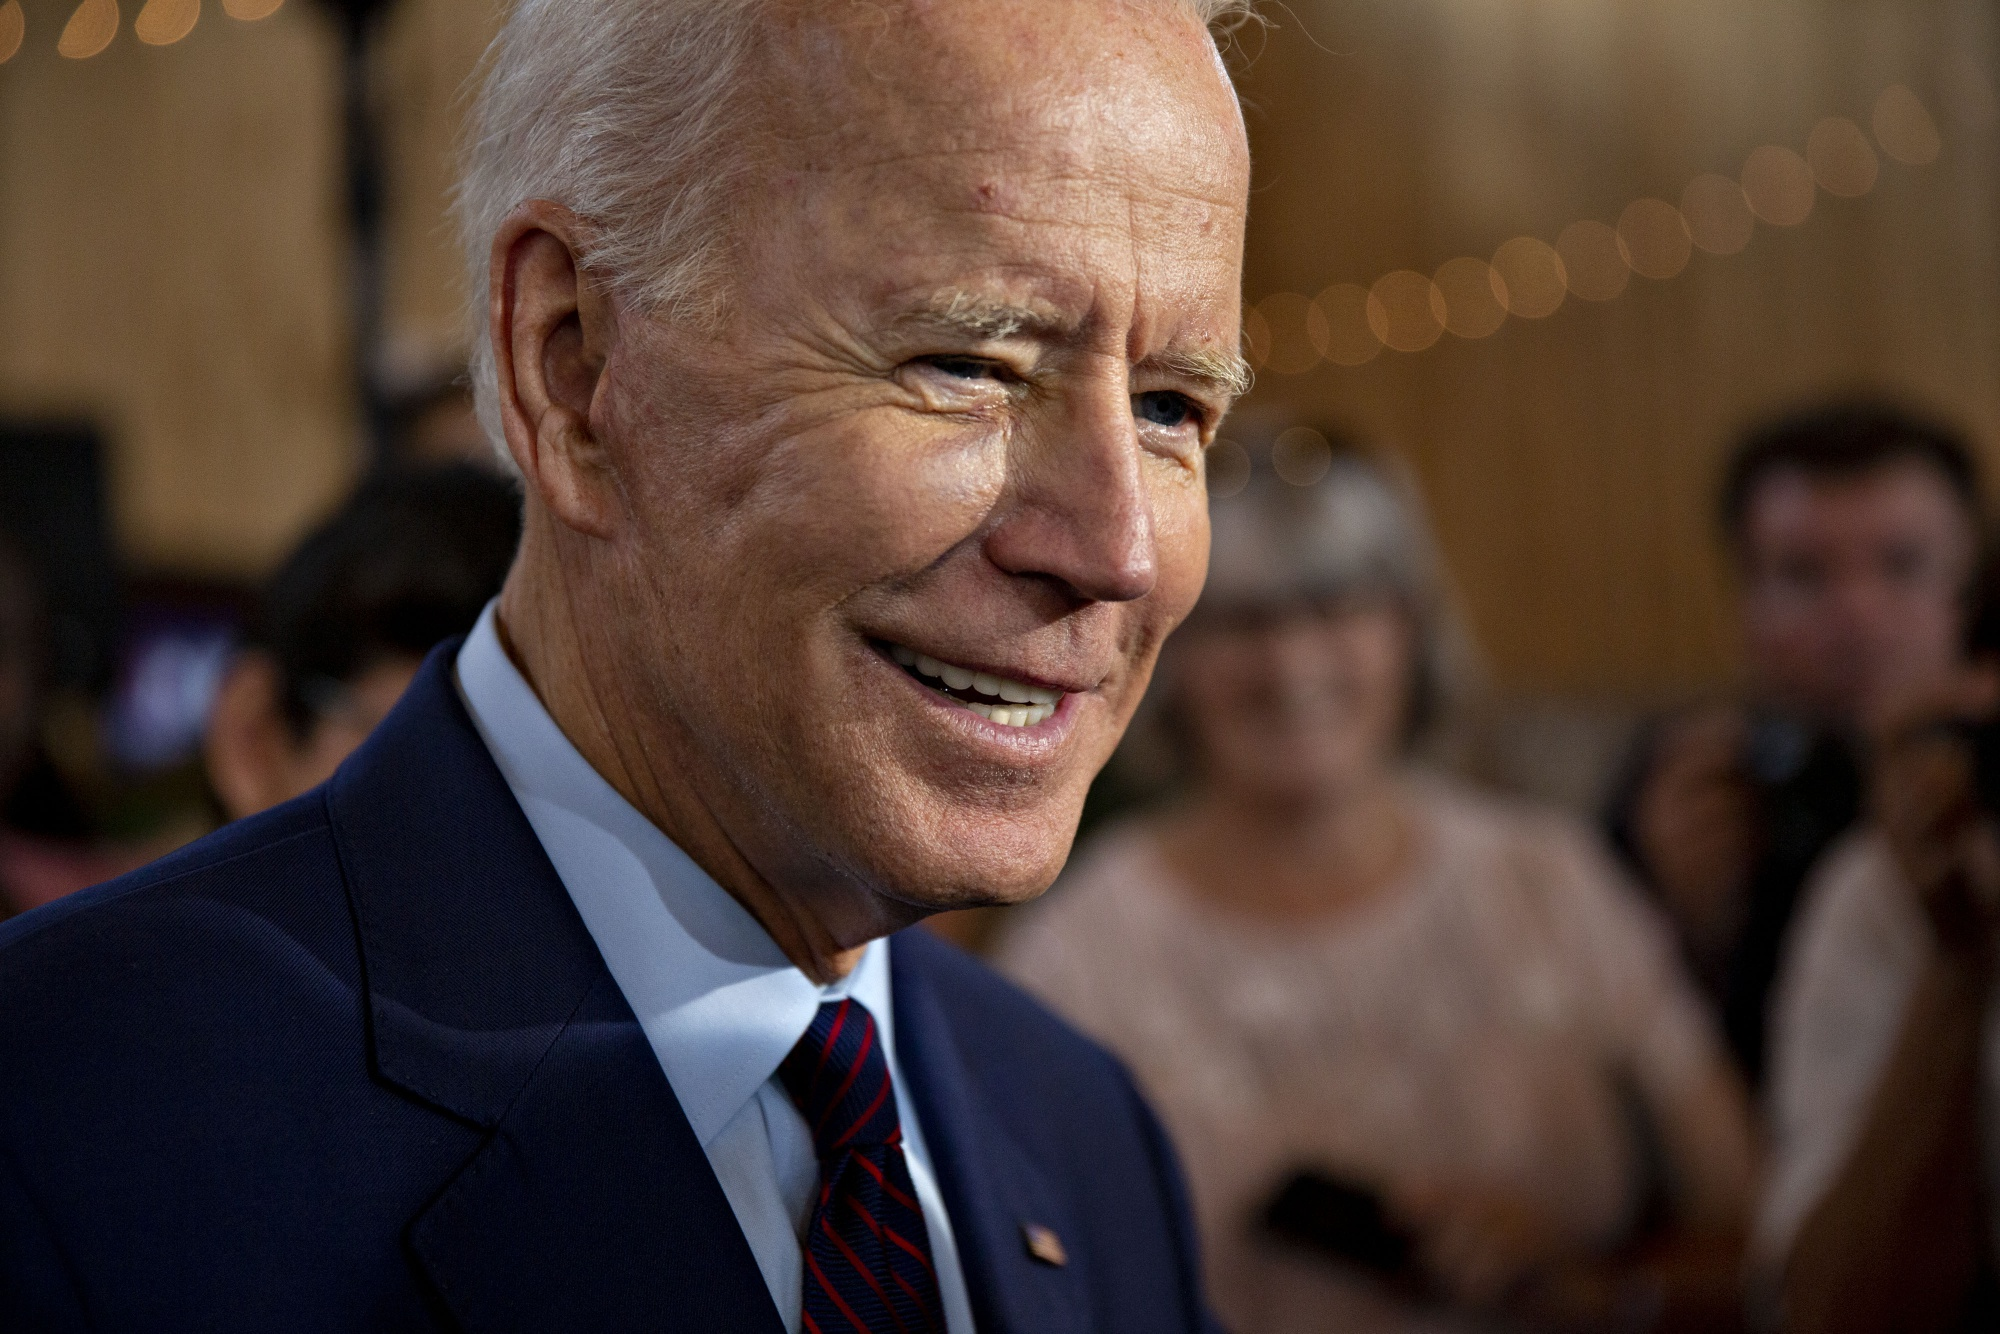 Biden Suggests He'd Be a One-Term President: Campaign Update